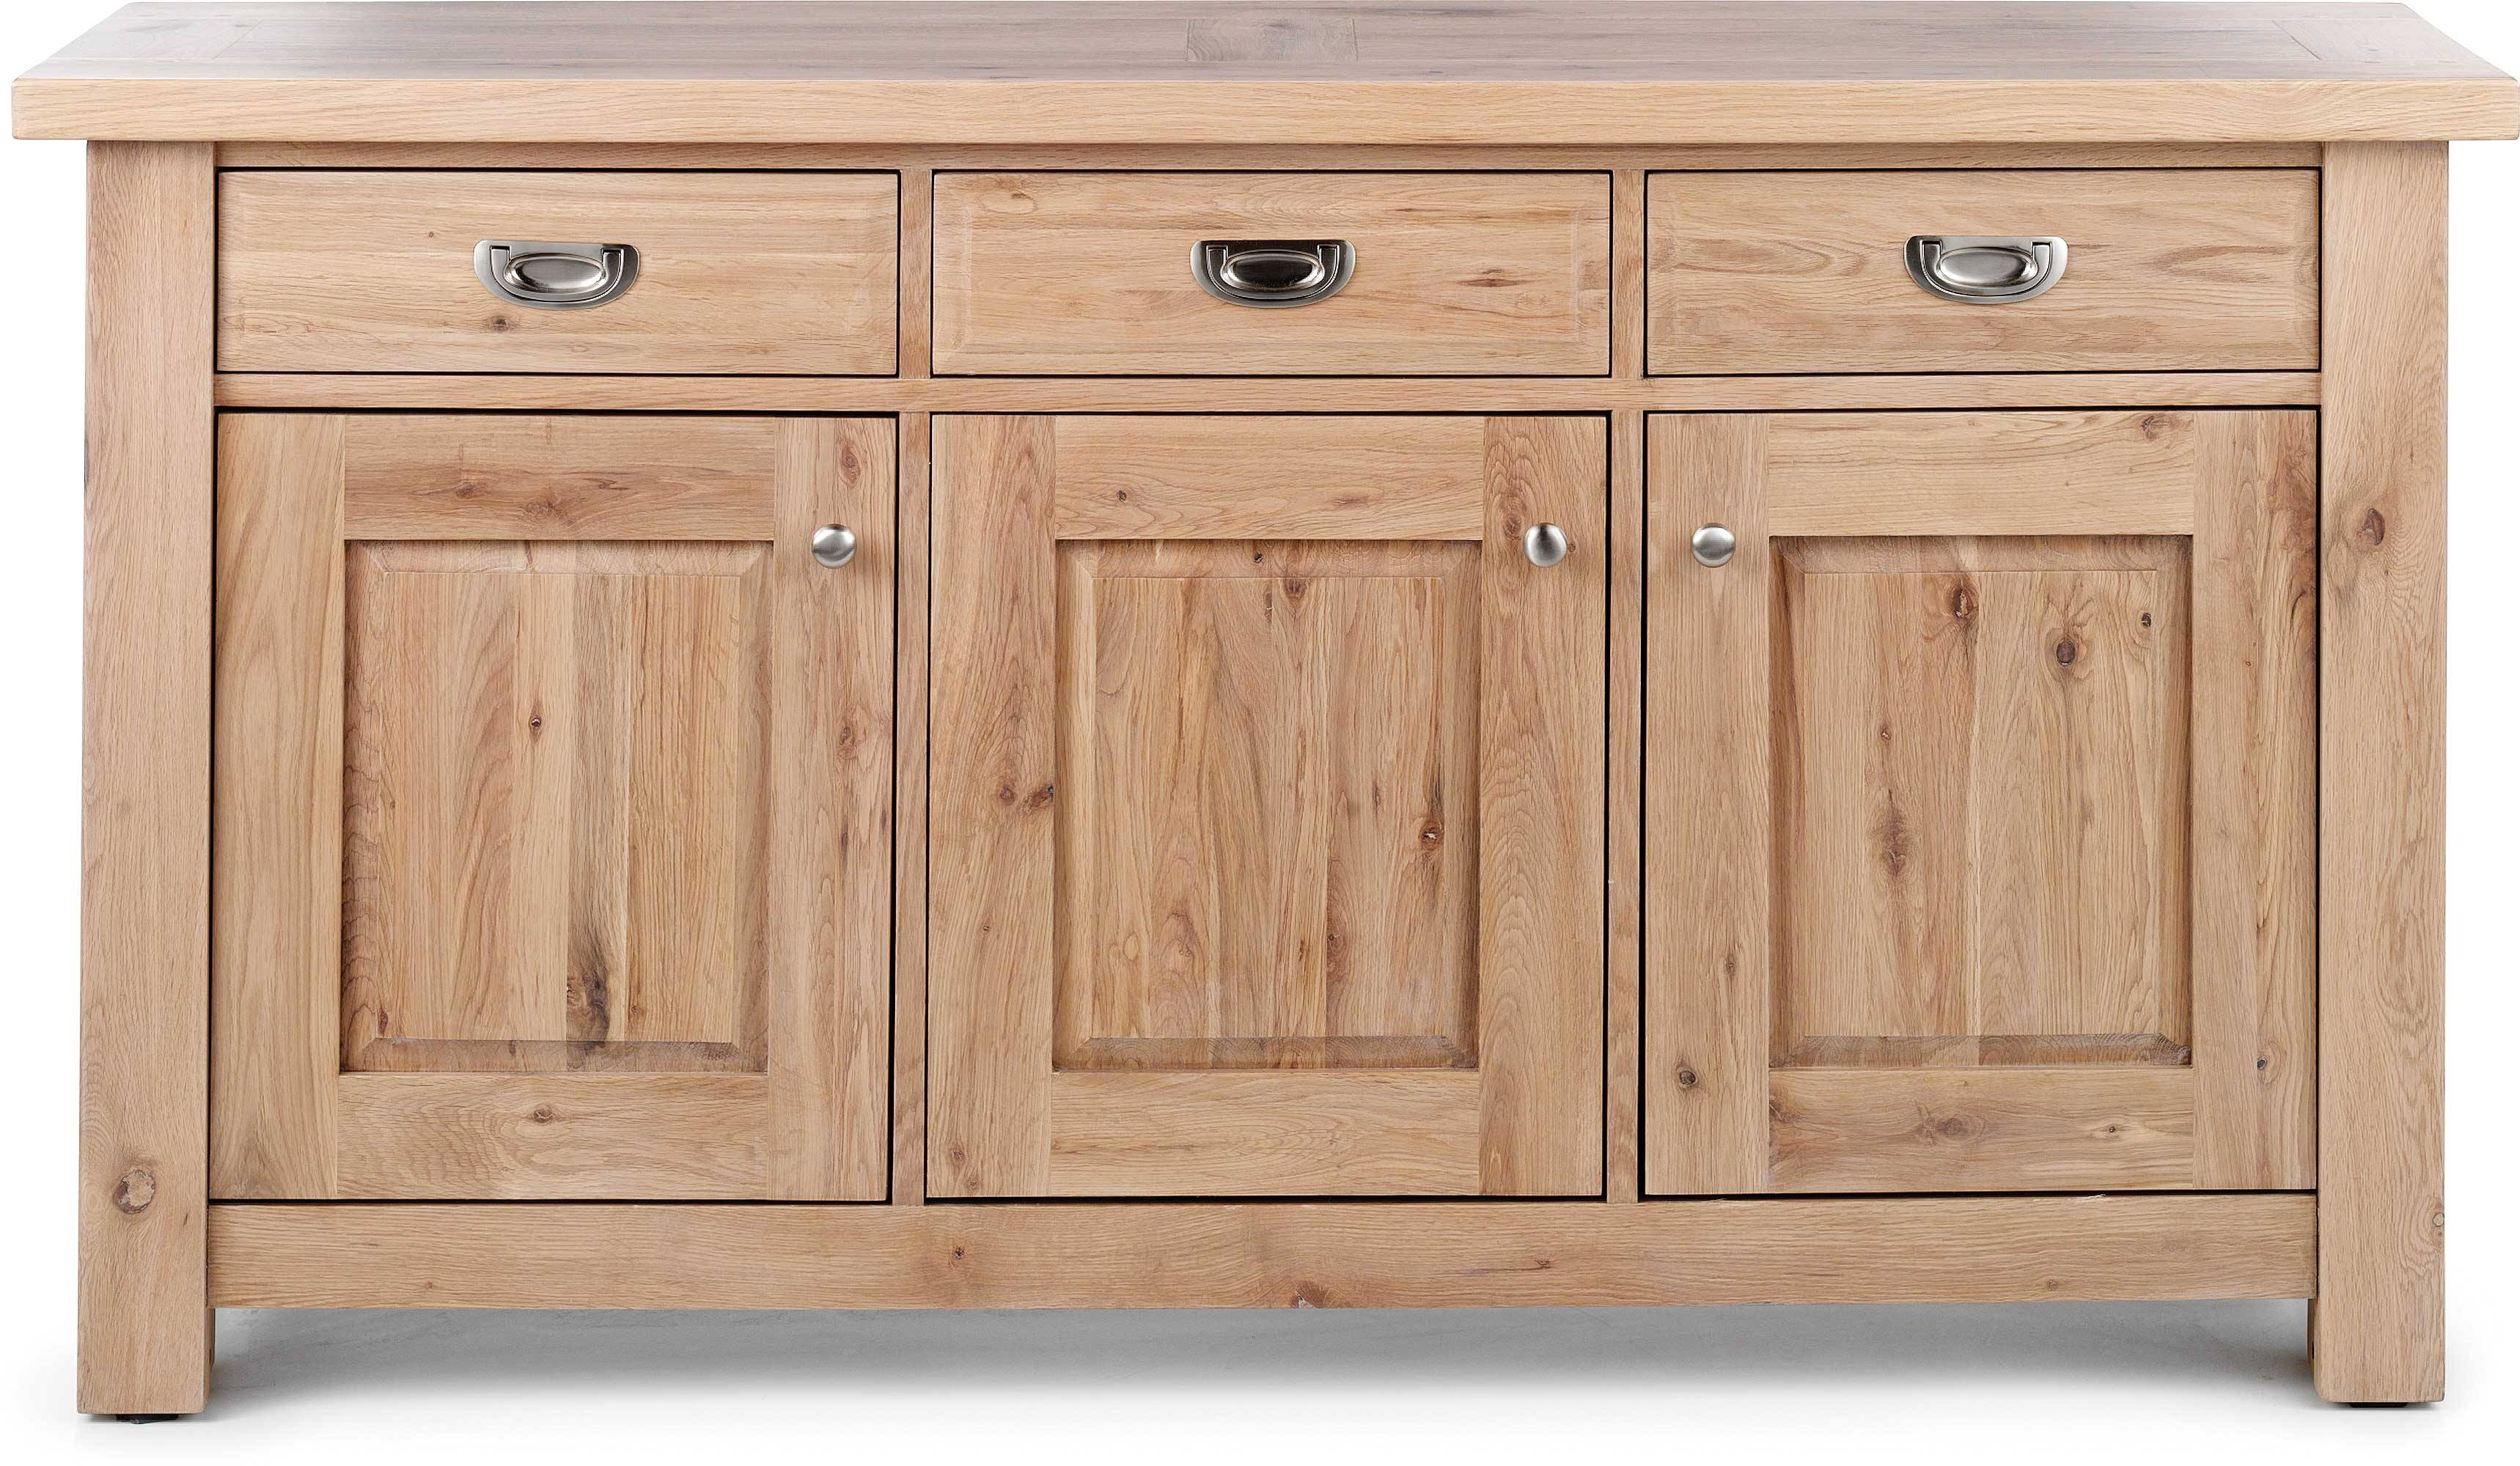 Sideboards - Cheshire Furniture Outlet in Light Oak Sideboards (Image 16 of 30)